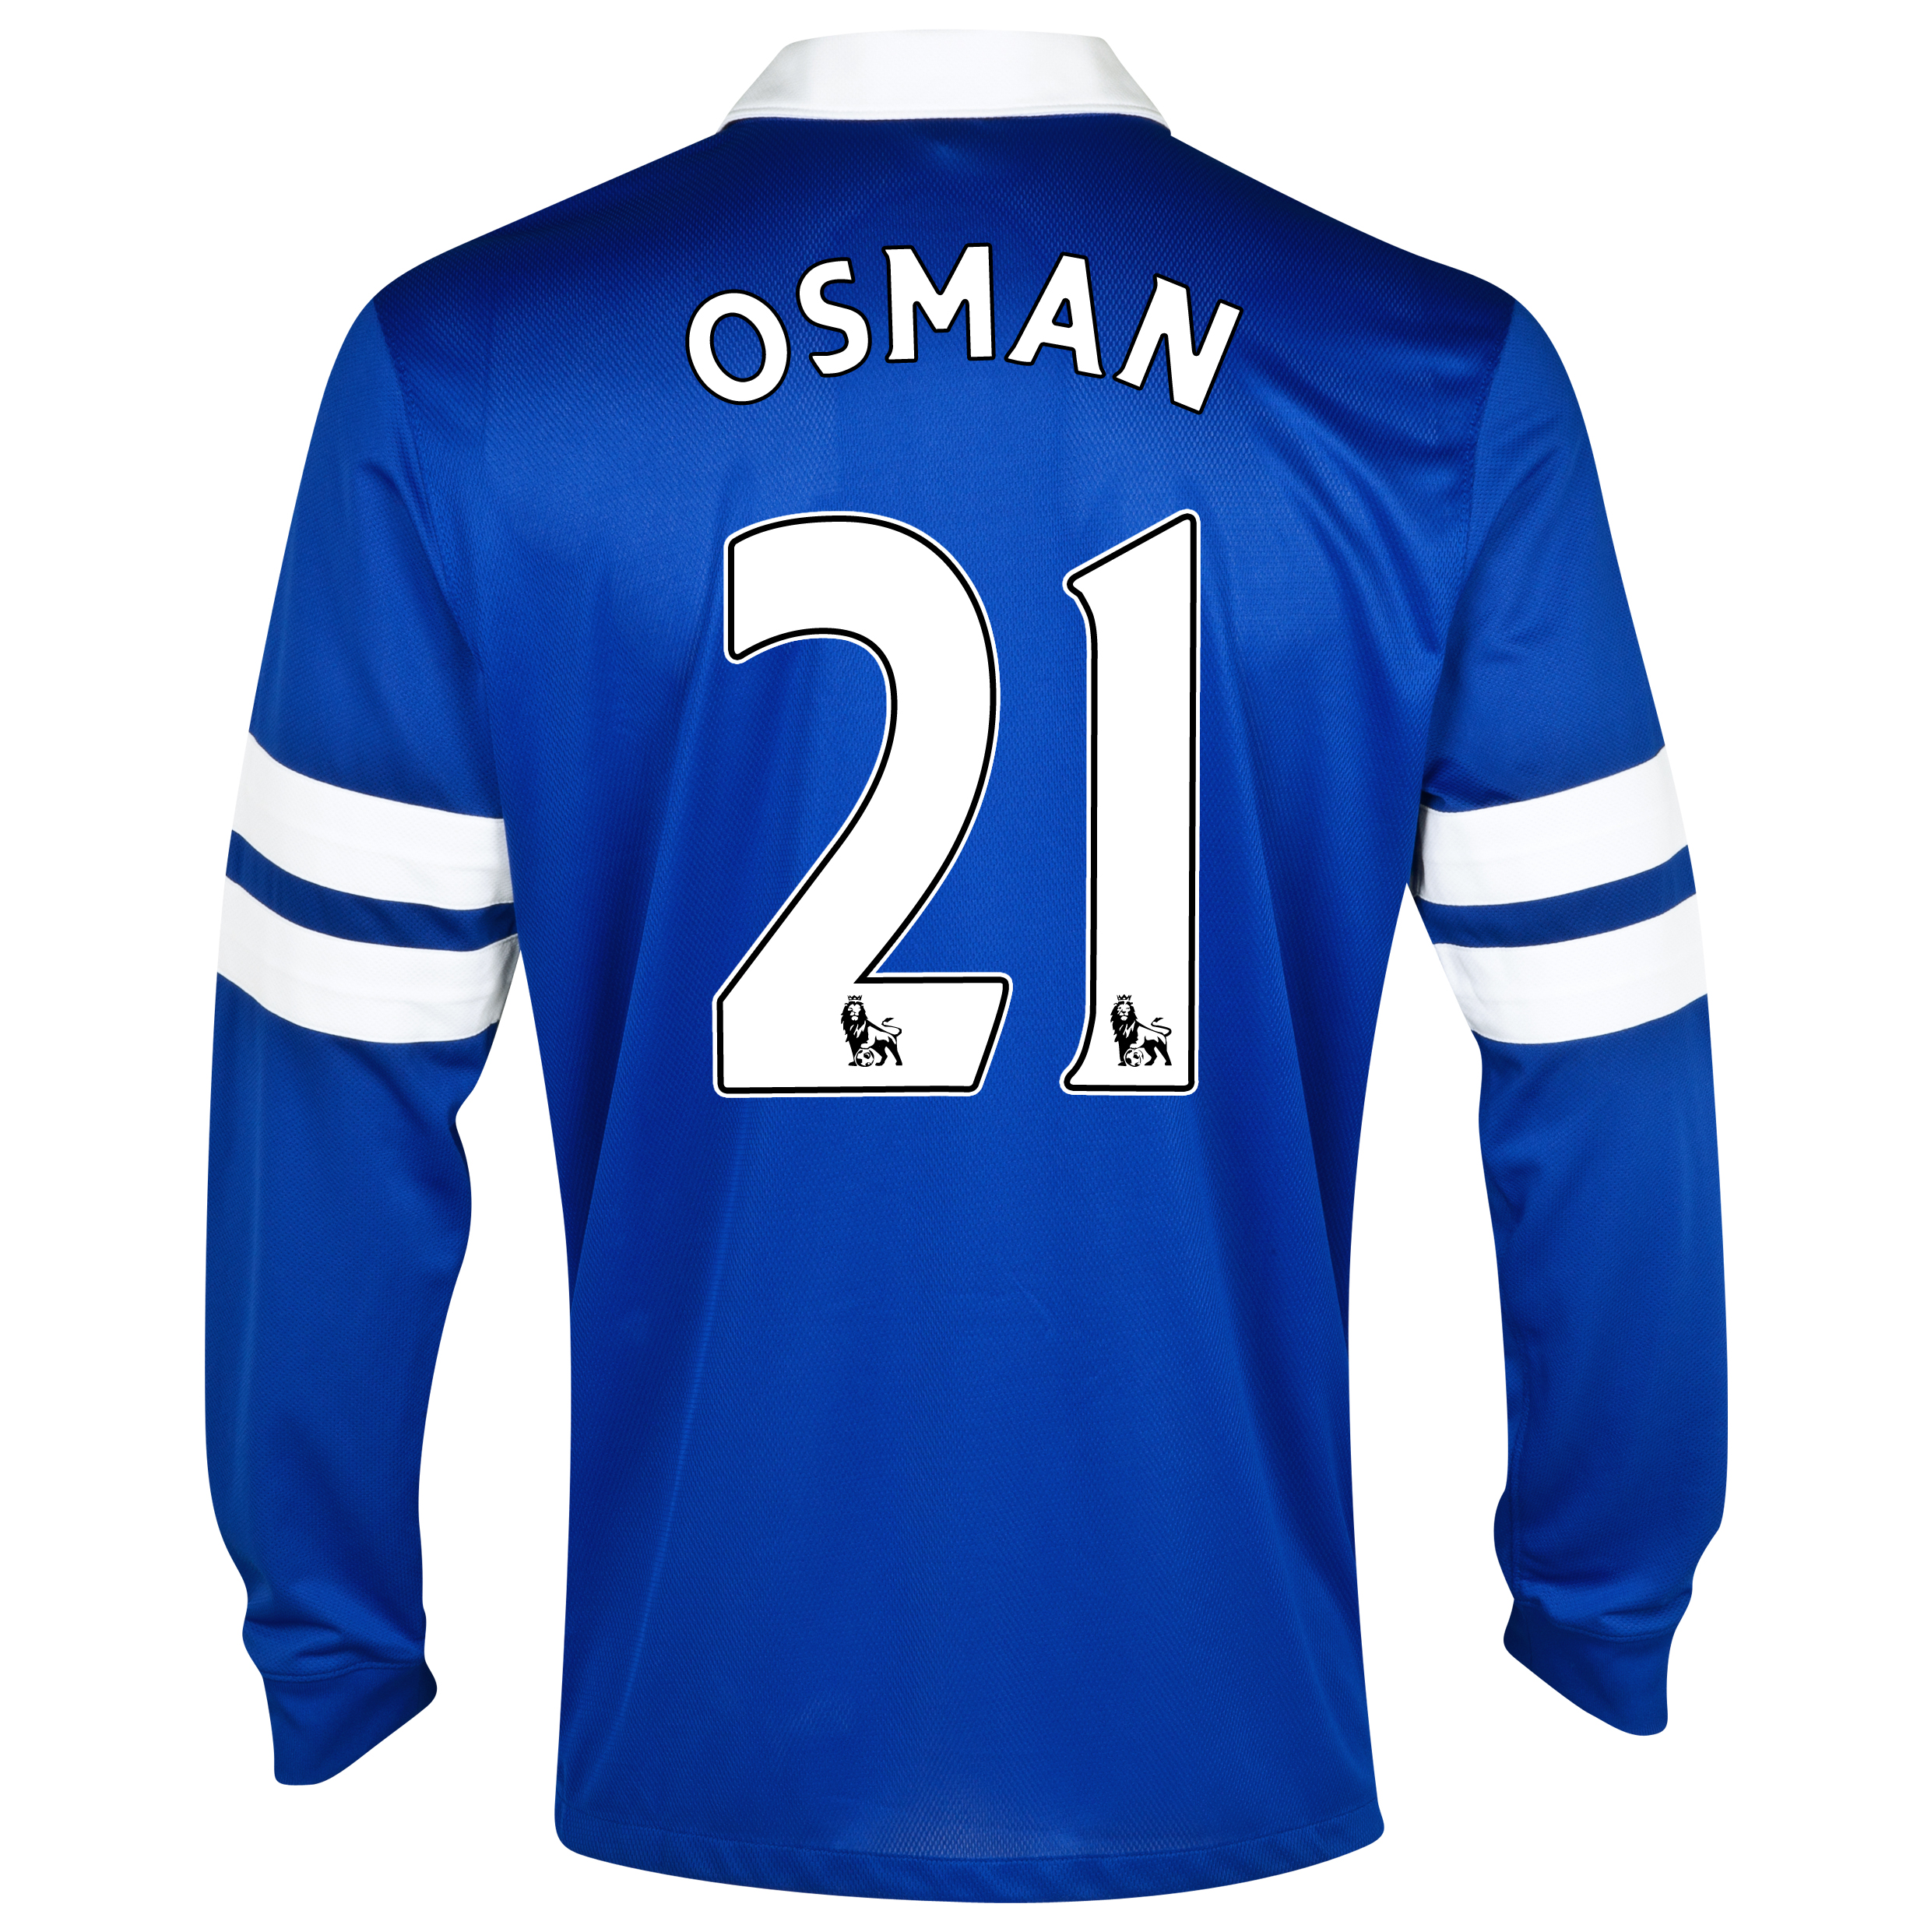 Everton Home Shirt 2013/14 - Junior - Long Sleeved Blue with Osman 21 printing